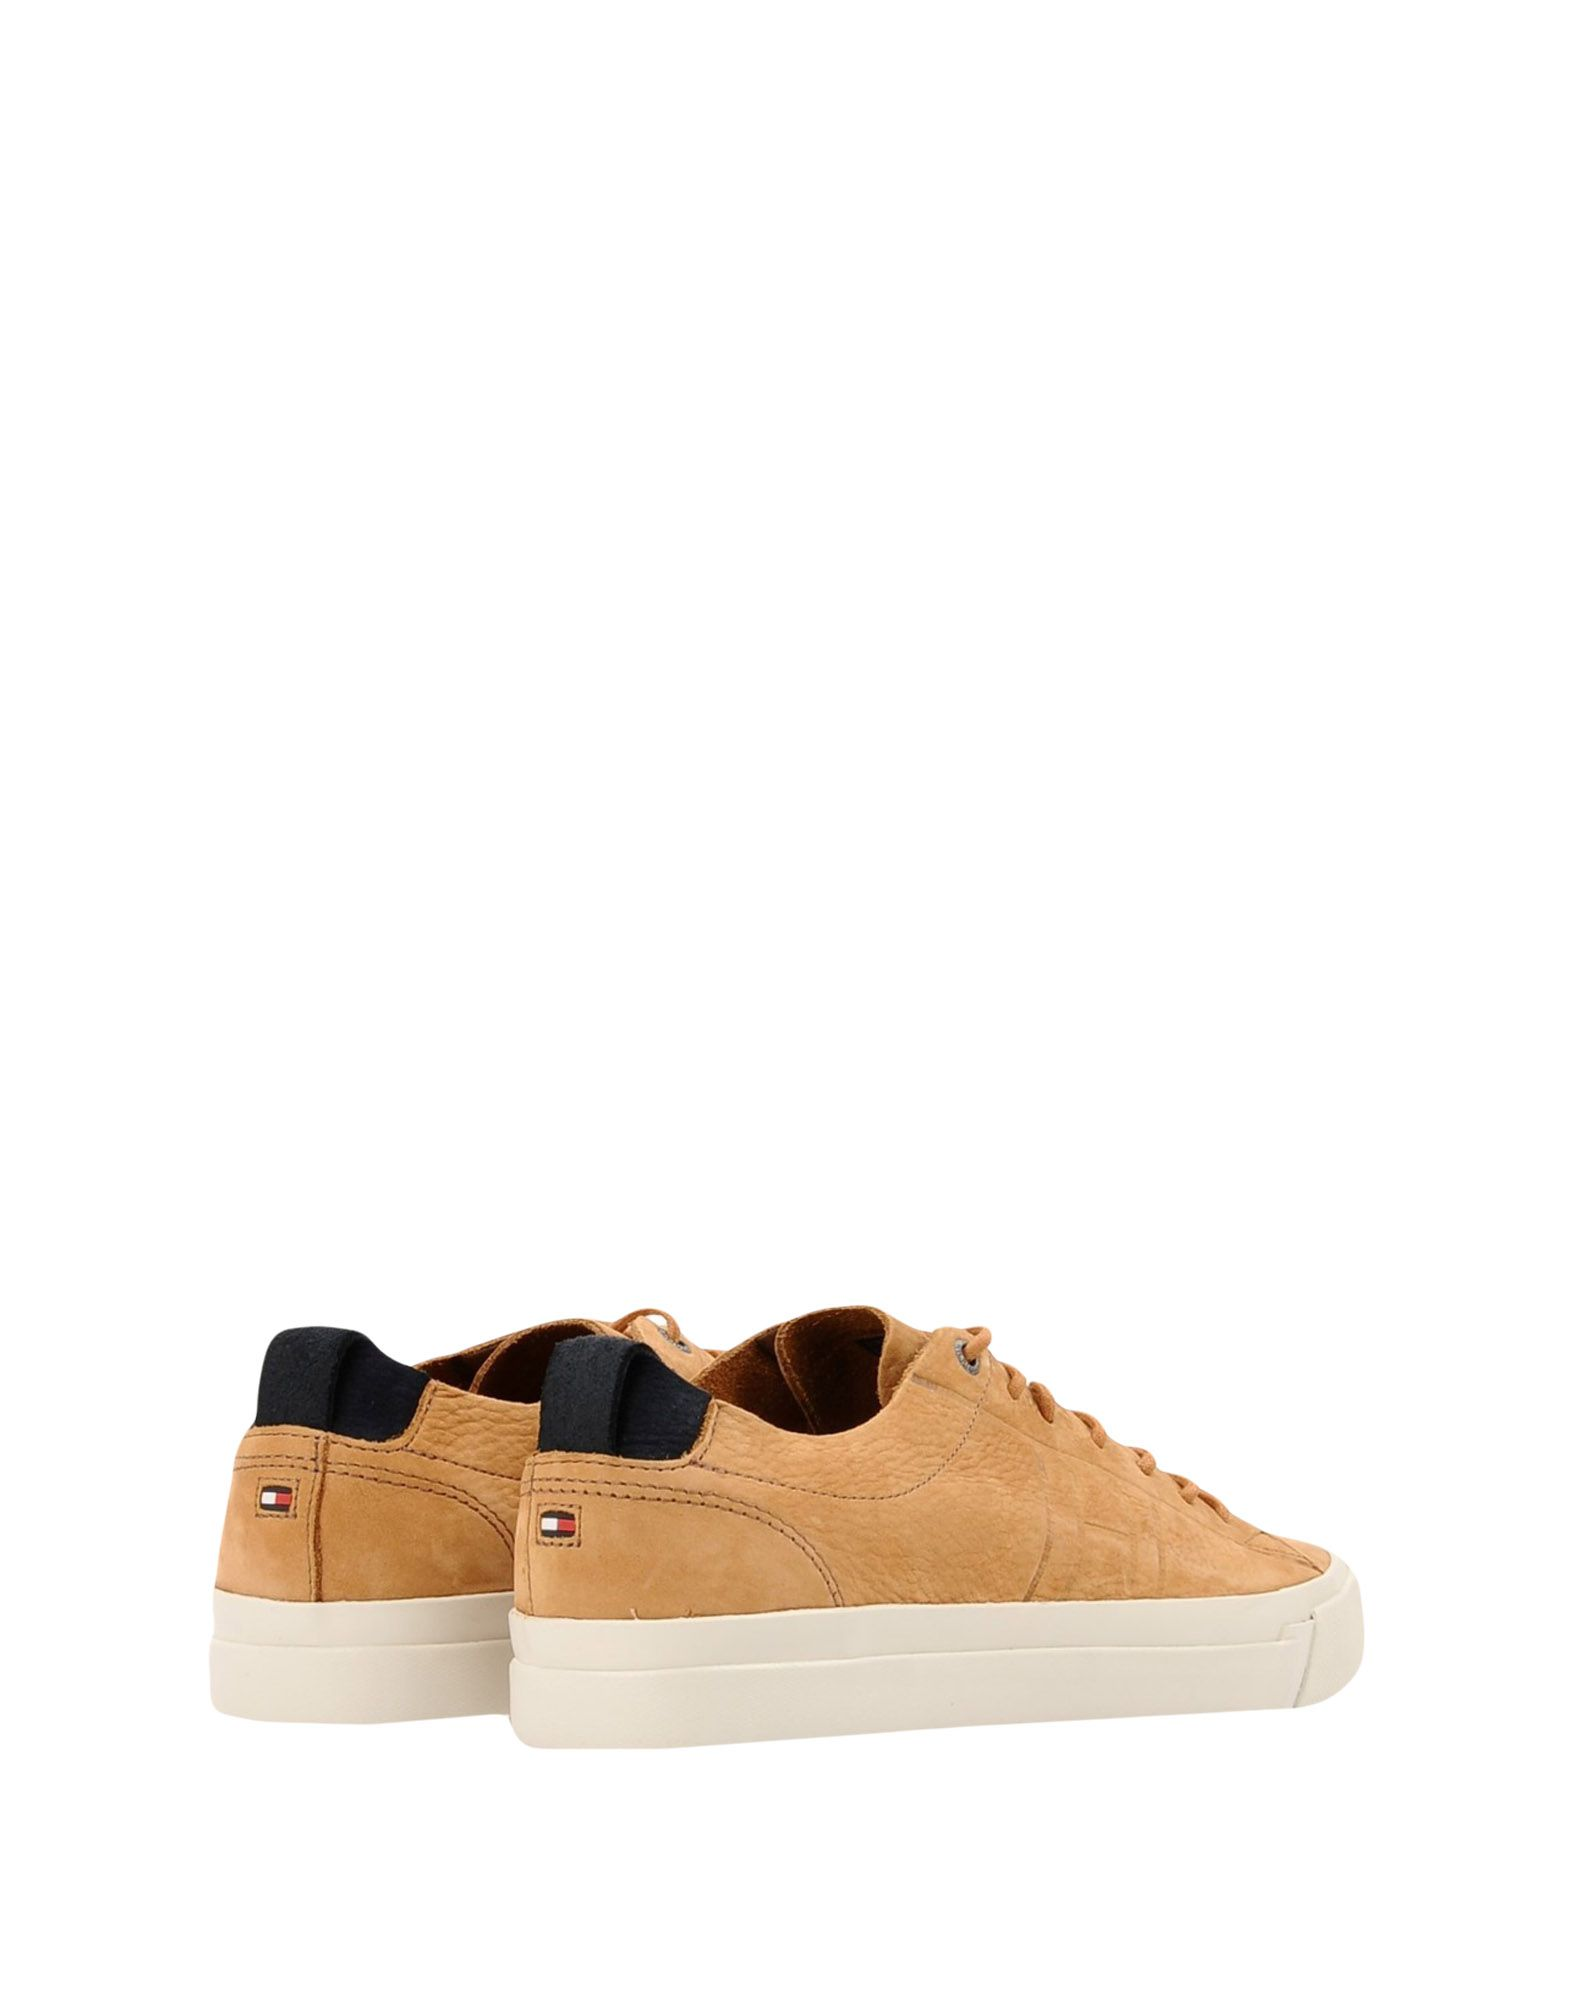 Sneakers Tommy Hilfiger Homme - Sneakers Tommy Hilfiger sur